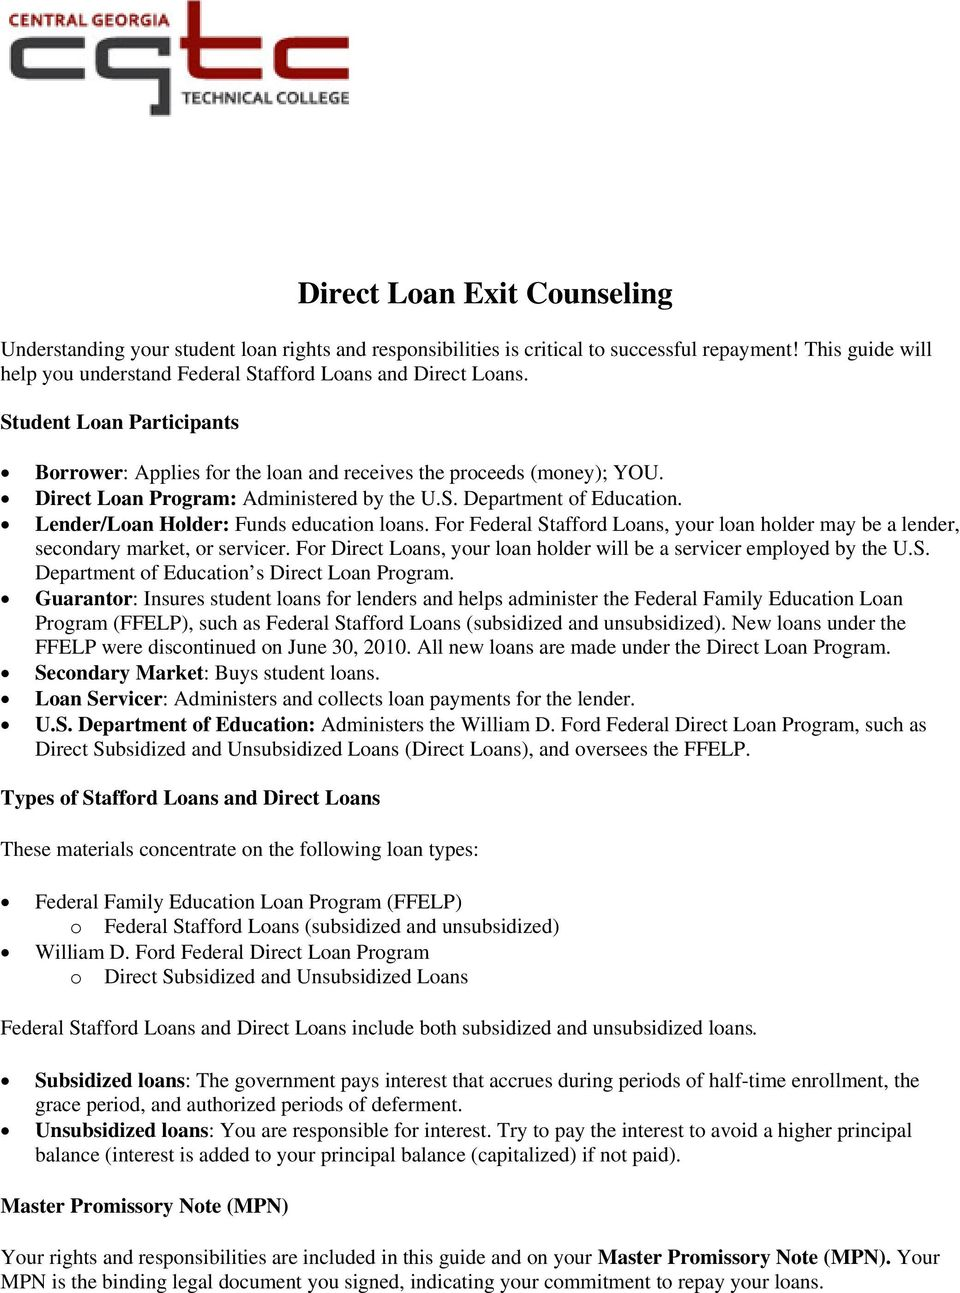 Direct Loan Program: Administered by the U.S. Department of Education. Lender/Loan Holder: Funds education loans.